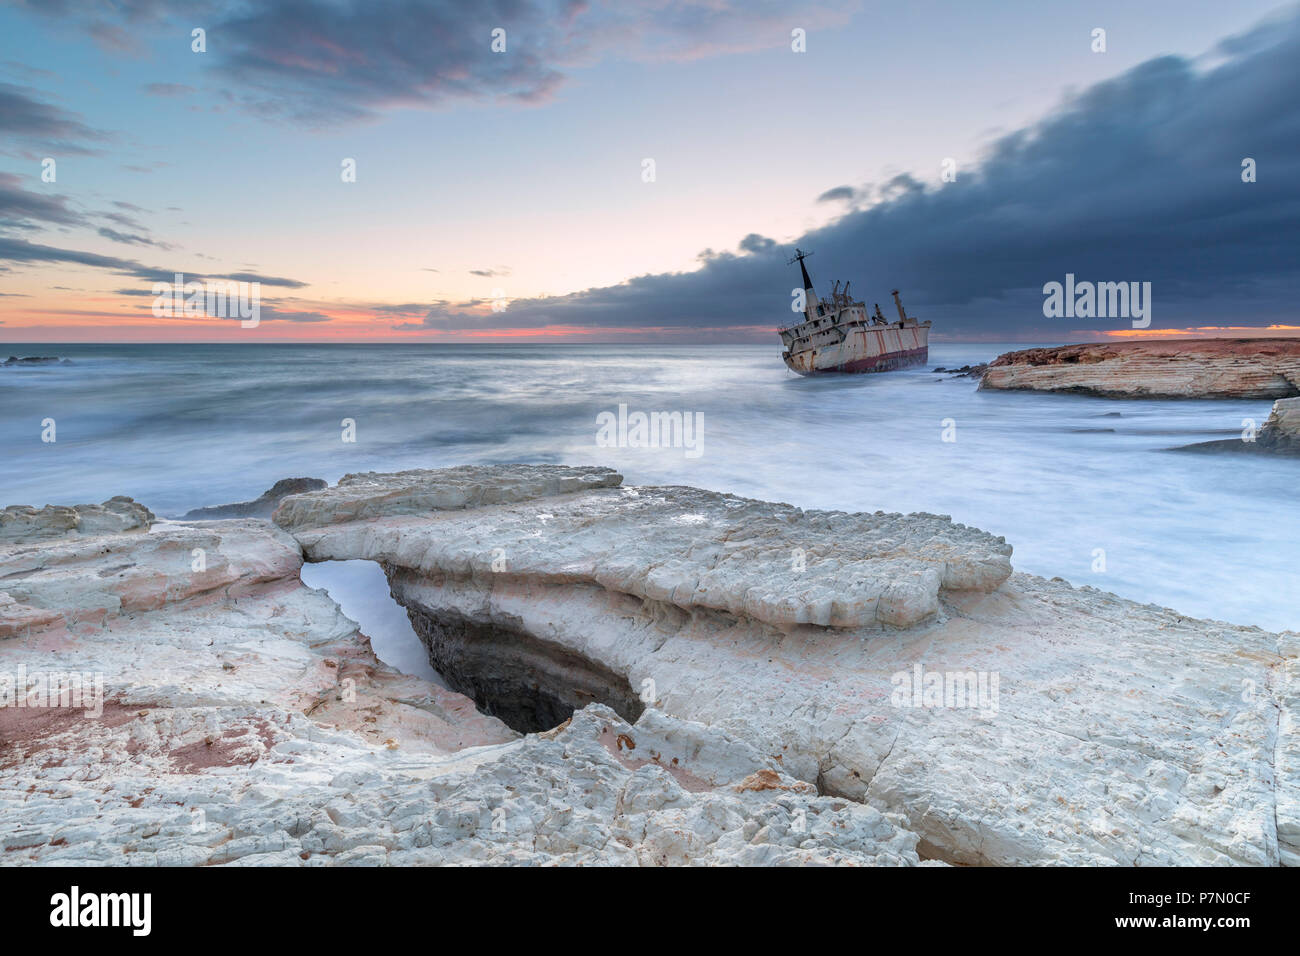 Cyprus, Paphos, Coral Bay, the shipwreck of Edro III at sunset - Stock Image